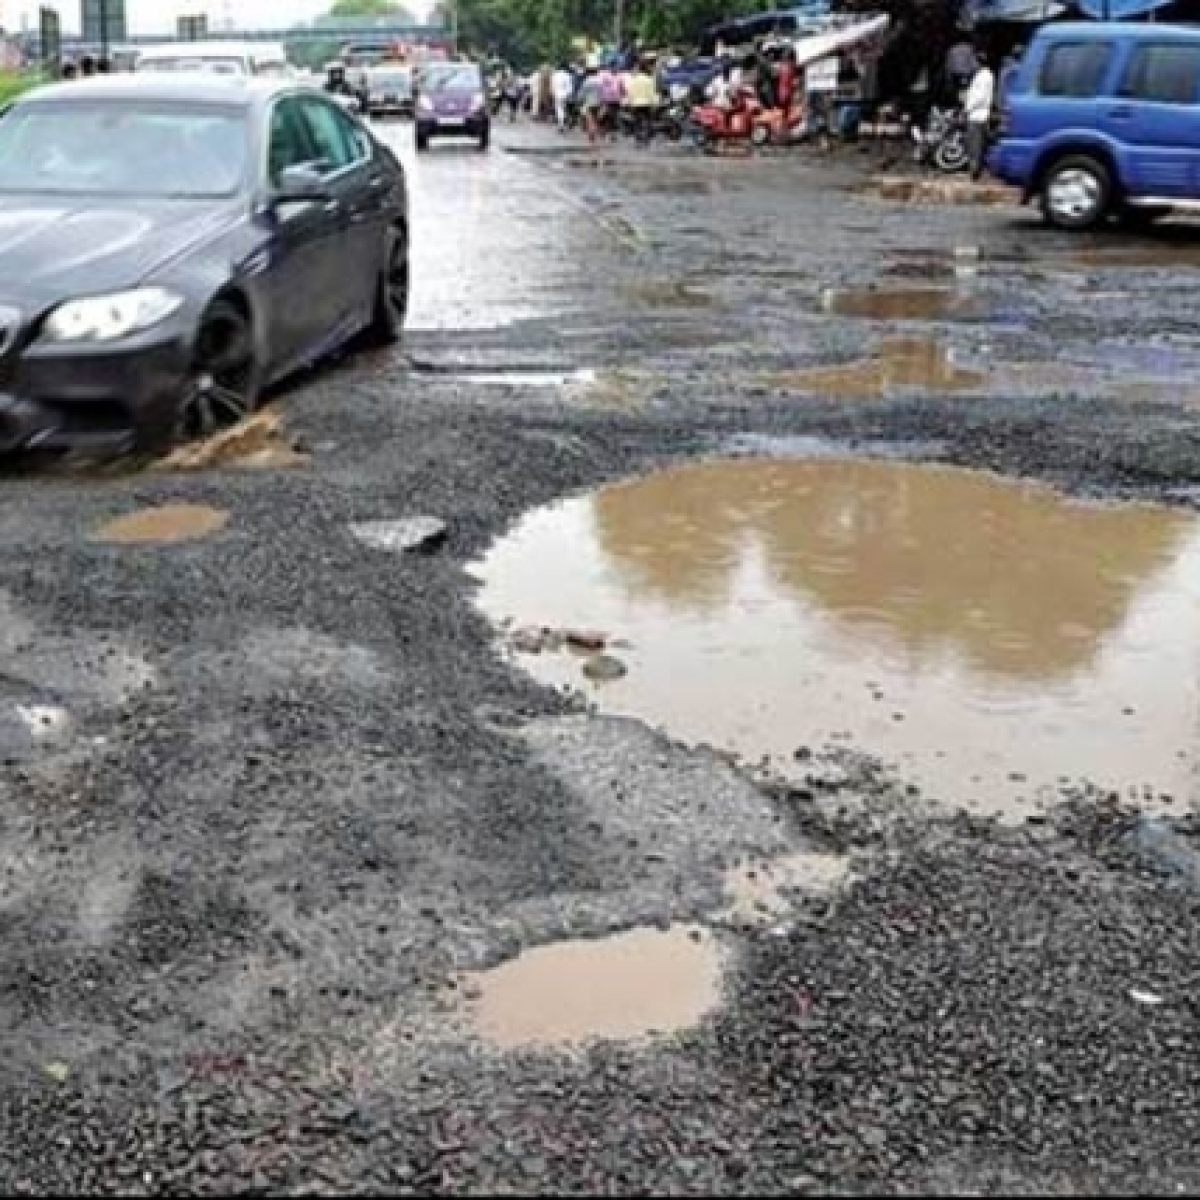 BMC has spent Rs 17,000 on every pothole it repaired in Mumbai: Report